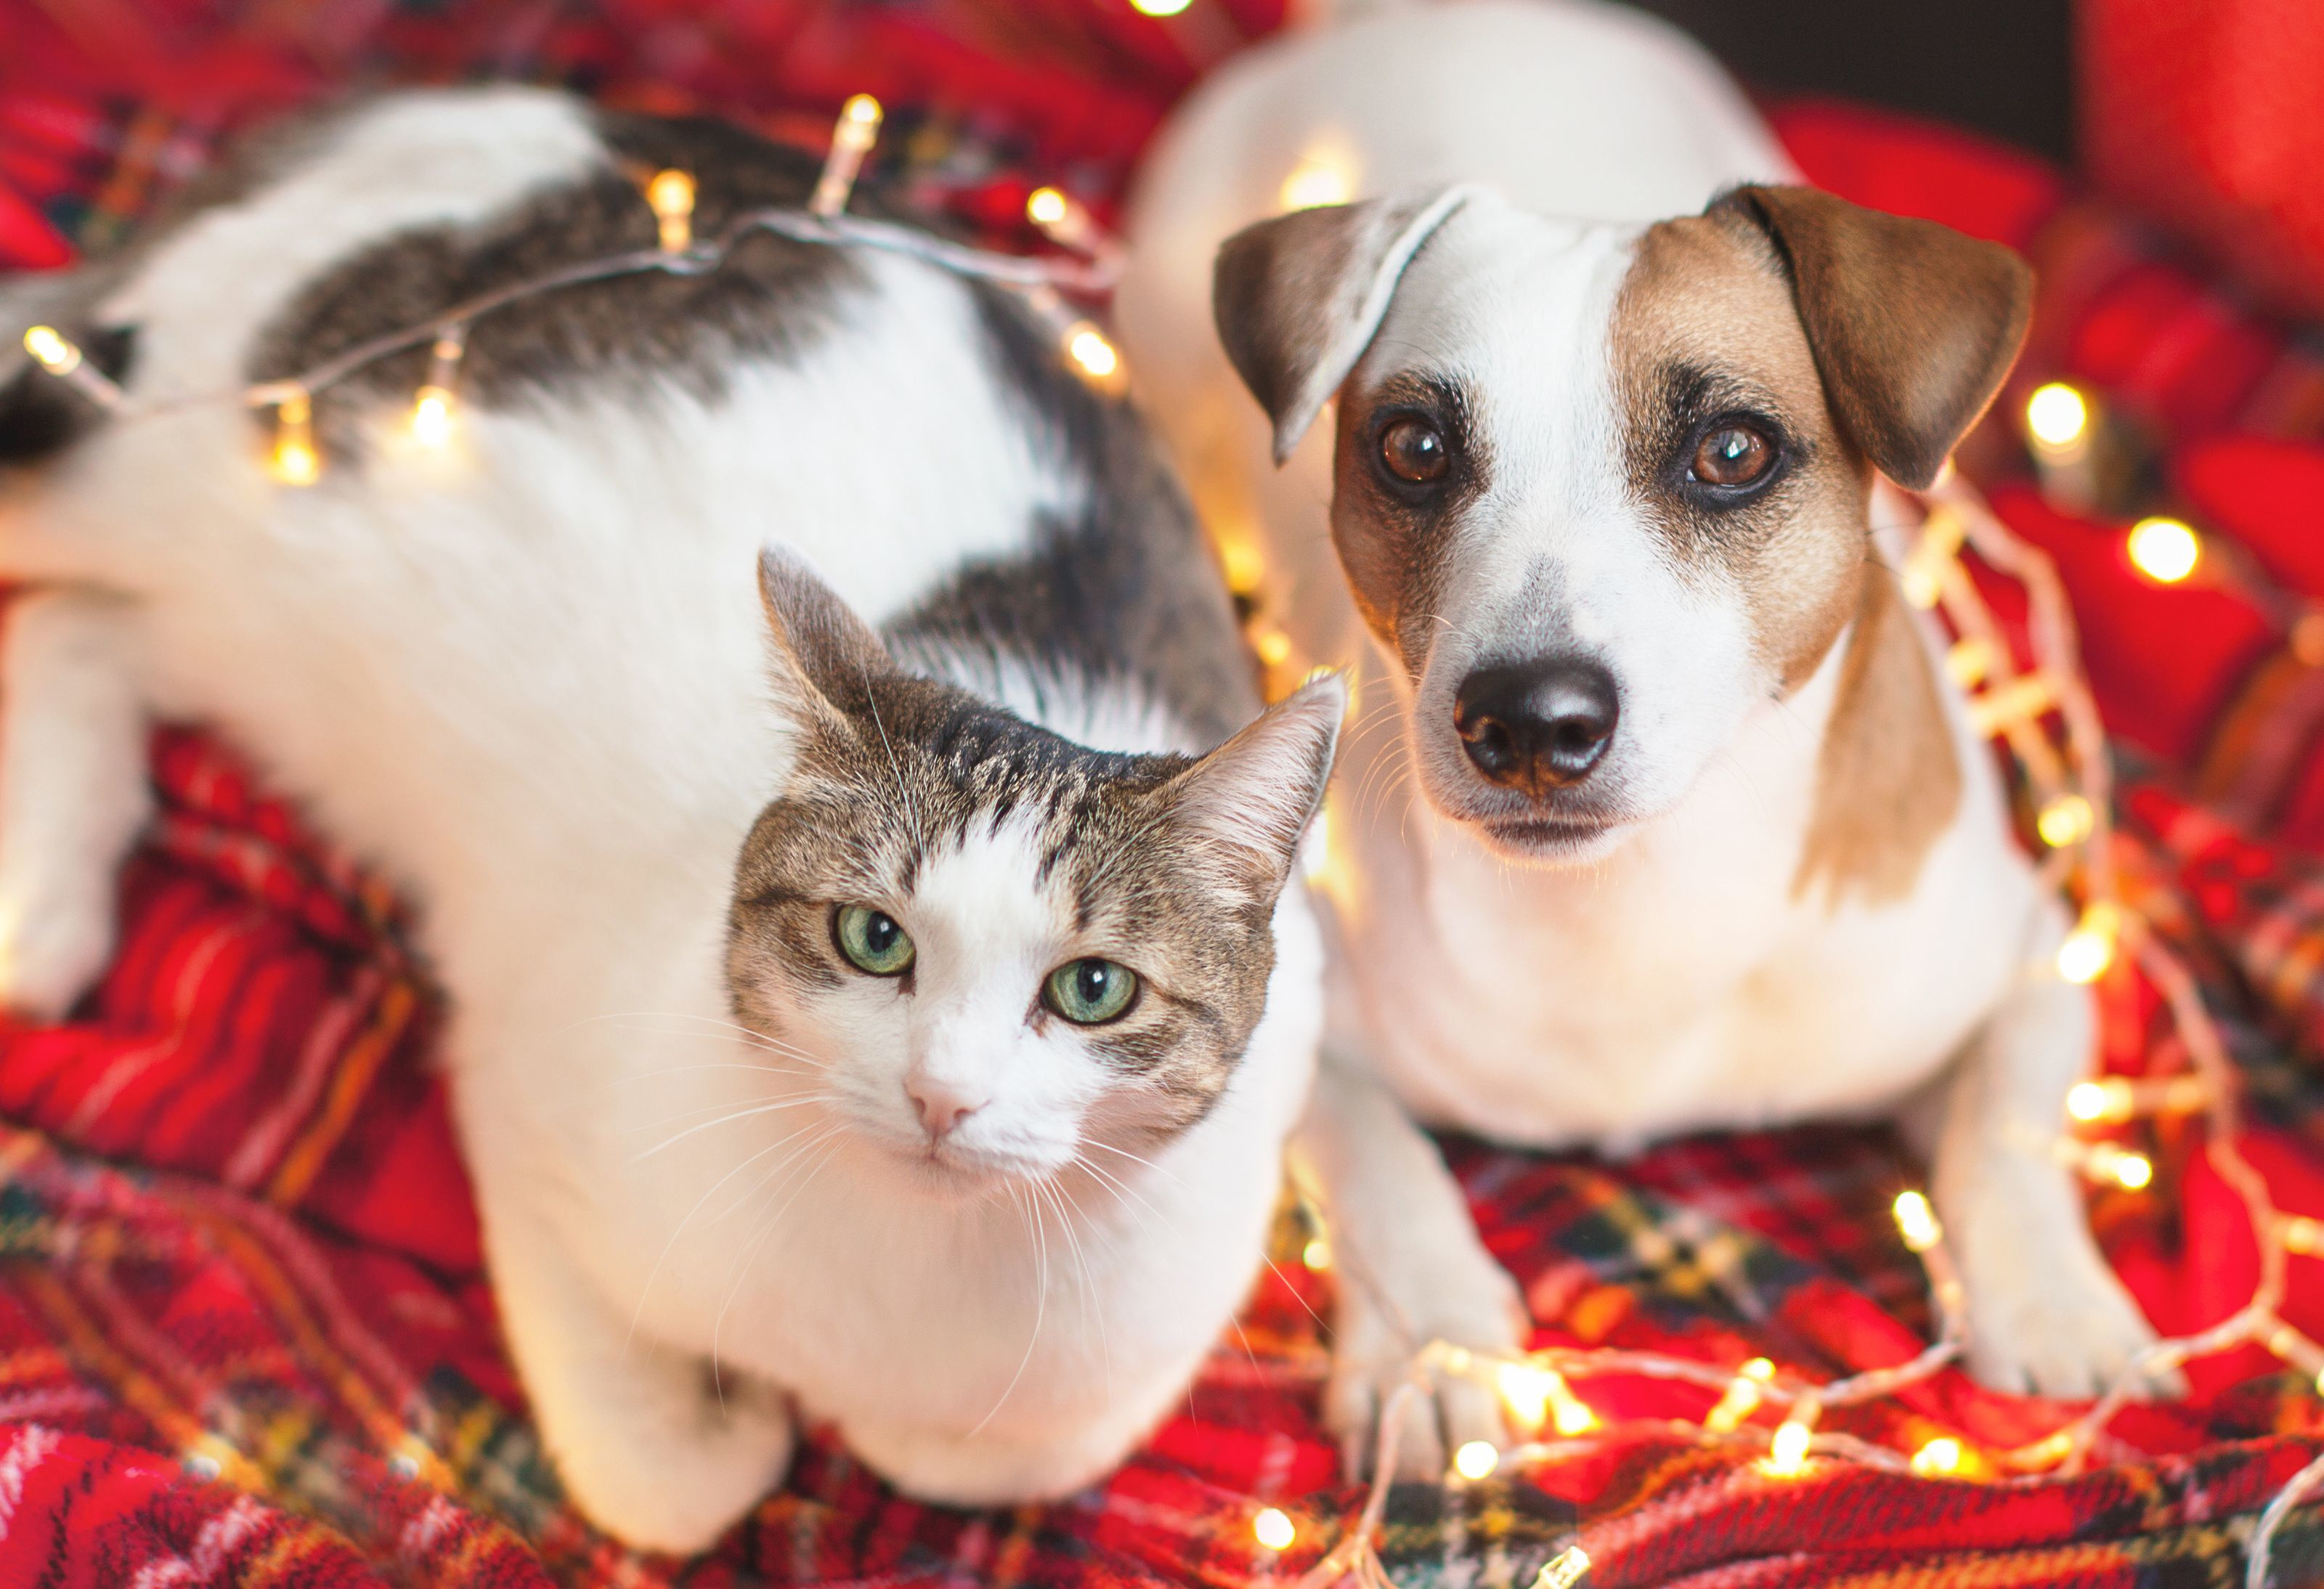 Send some Holiday Cheer to Homeless Pets in Need